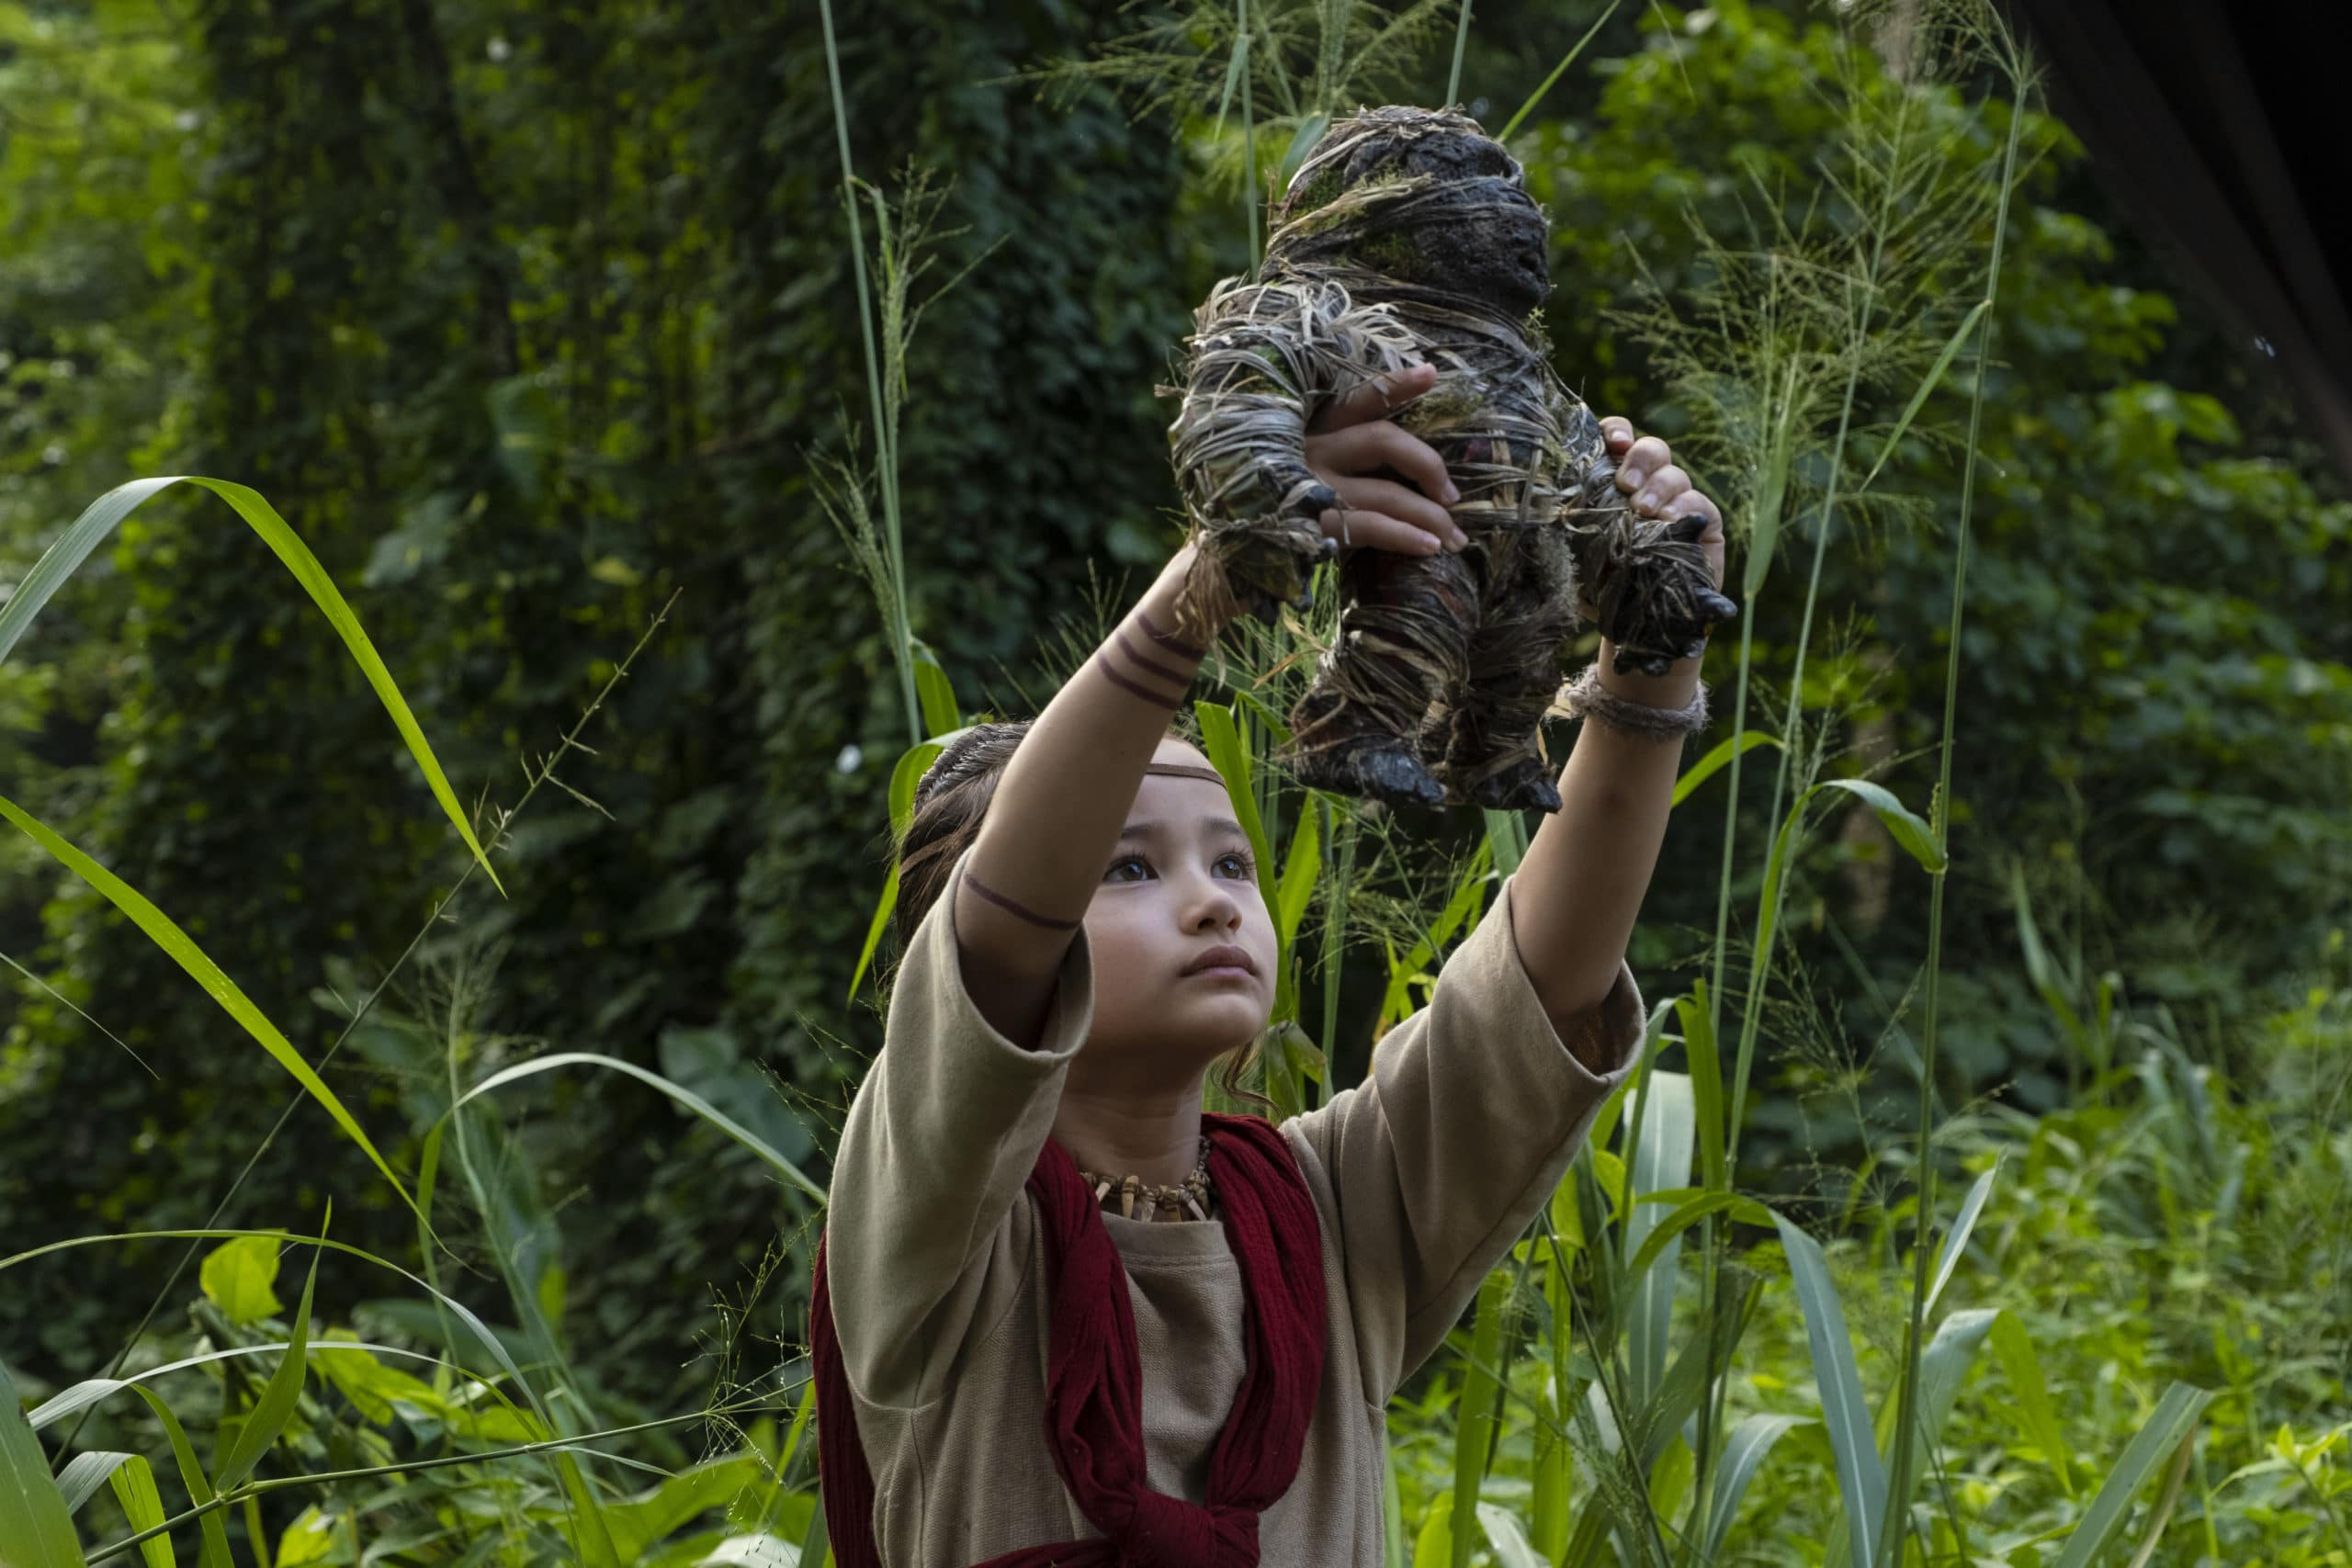 KAYLEE HOTTLE as Jia mit Kong Puppe in Godzilla vs Kong © 2021 LEGENDARY AND WARNER BROS. ENTERTAINMENT INC. ALL RIGHTS RESERVED. GODZILLA TM & © TOHO CO., LTD.